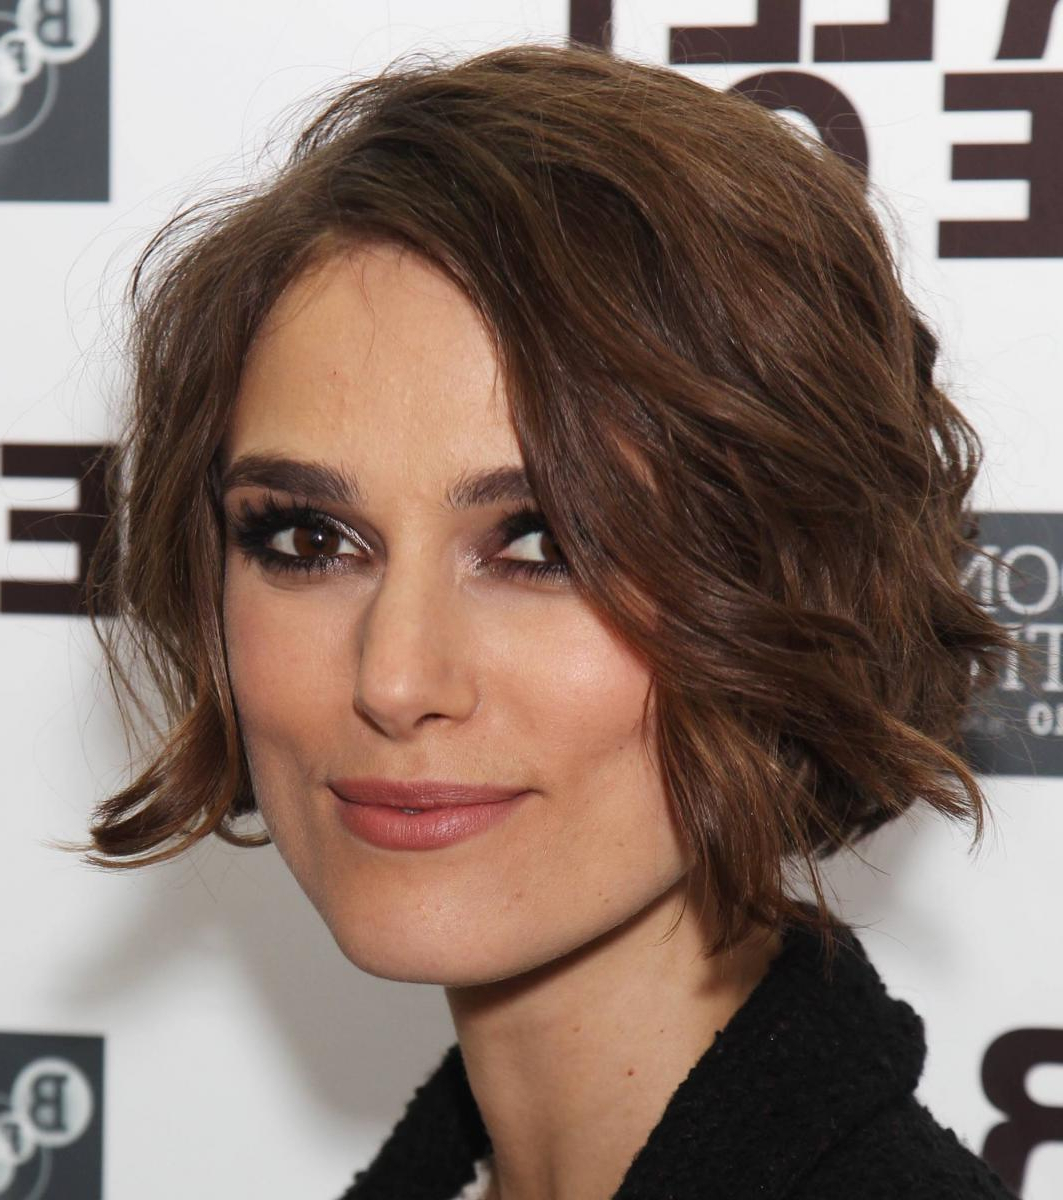 The Best Haircut For Your Face Shape – Arabia Weddings In Short Haircuts For Square Face Shape (View 23 of 25)